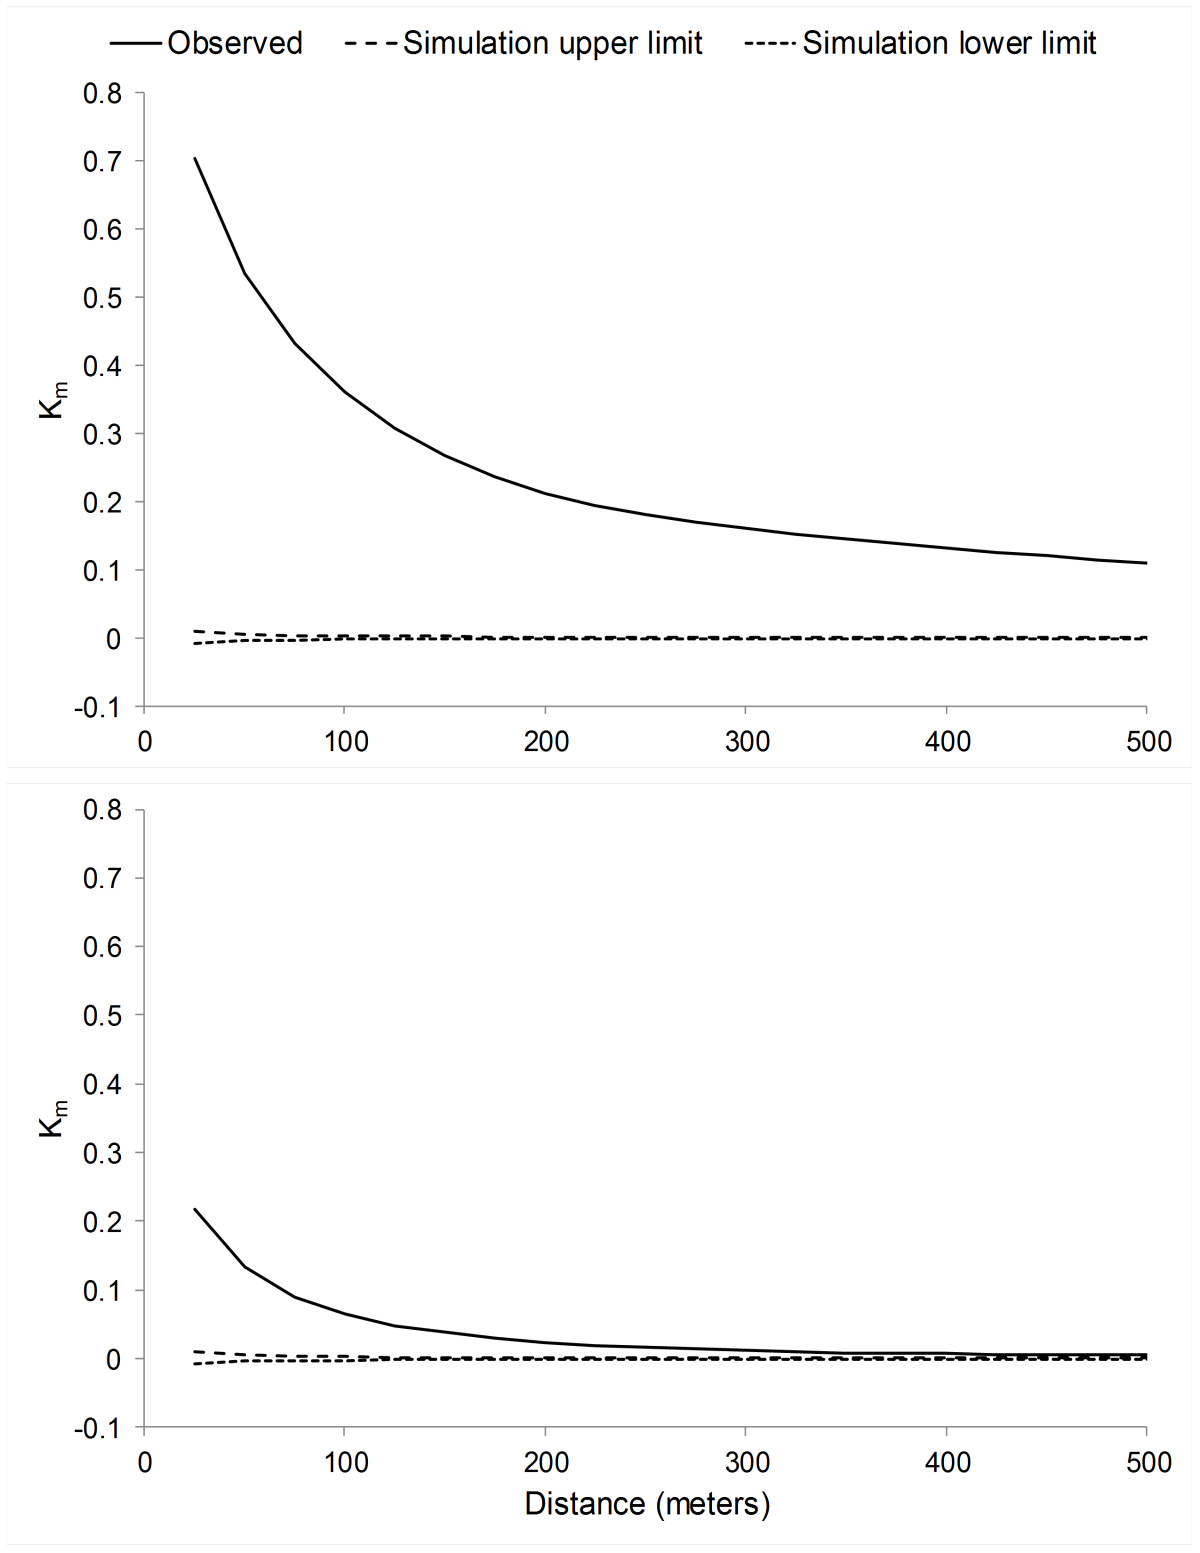 http://static-content.springer.com/image/art%3A10.1186%2F1476-072X-12-48/MediaObjects/12942_2013_Article_563_Fig2_HTML.jpg